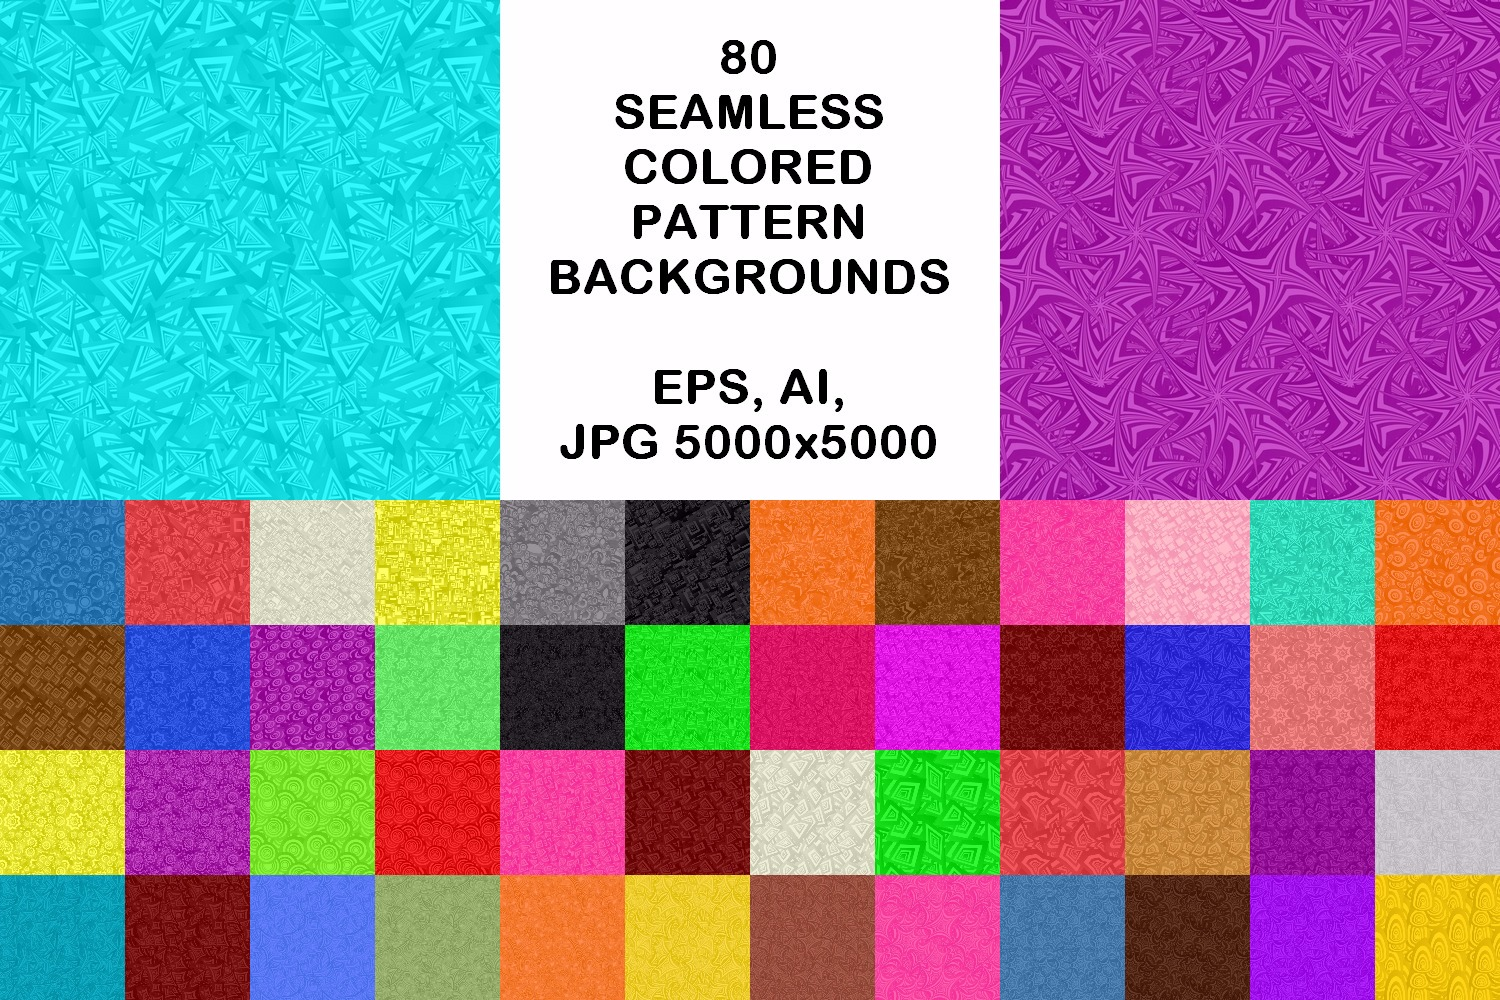 80 seamless pattern backgrounds - AI, EPS, JPG 5000x5000 example image 1